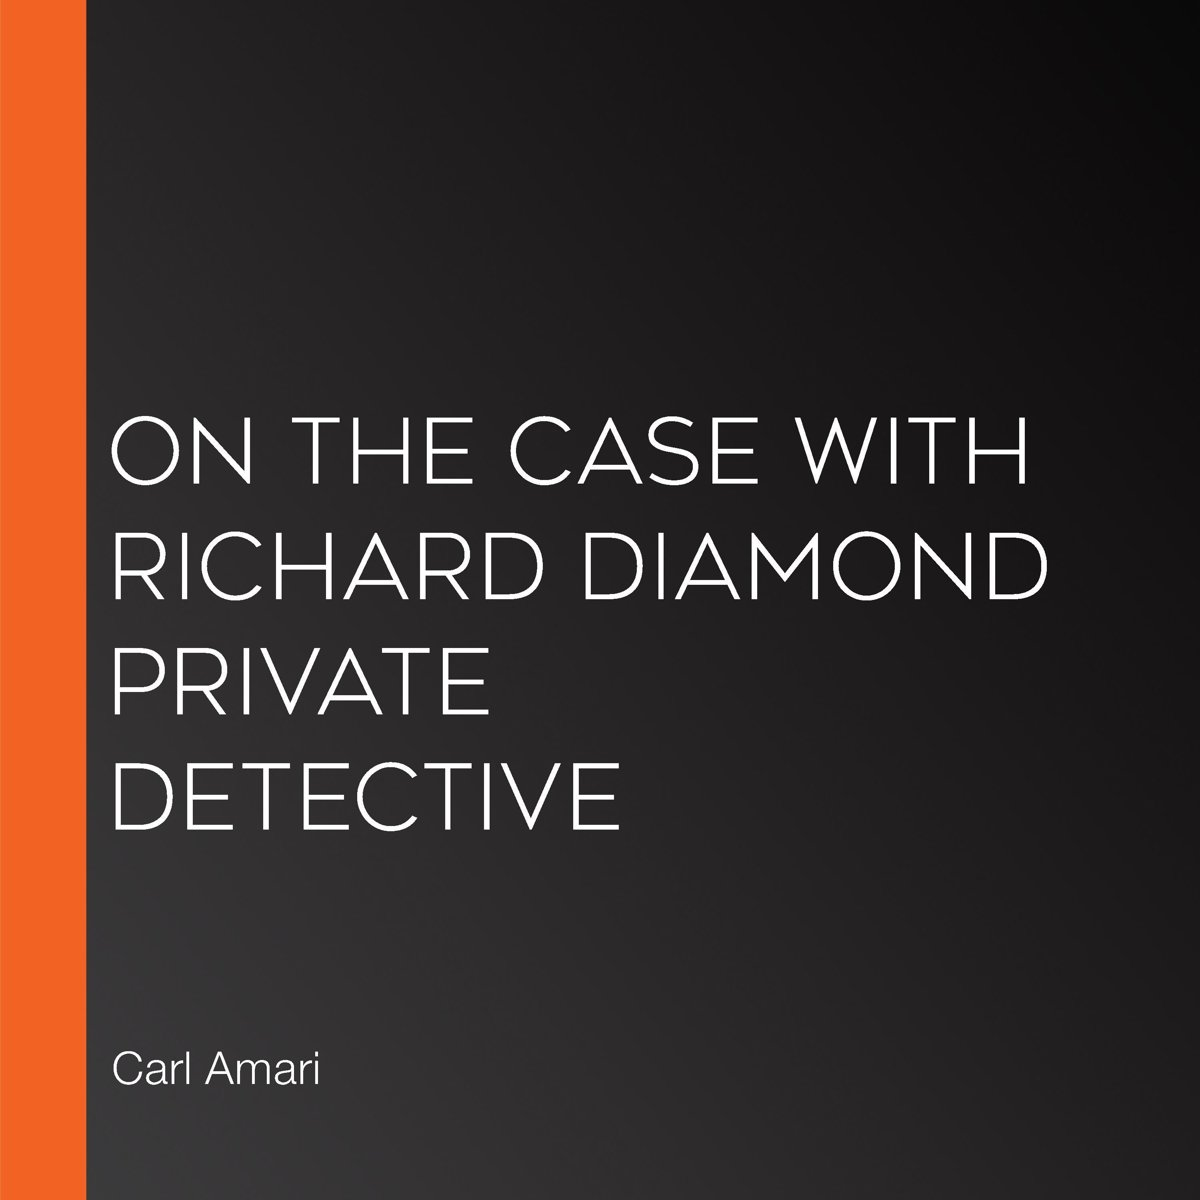 On the Case with Richard Diamond Private Detective